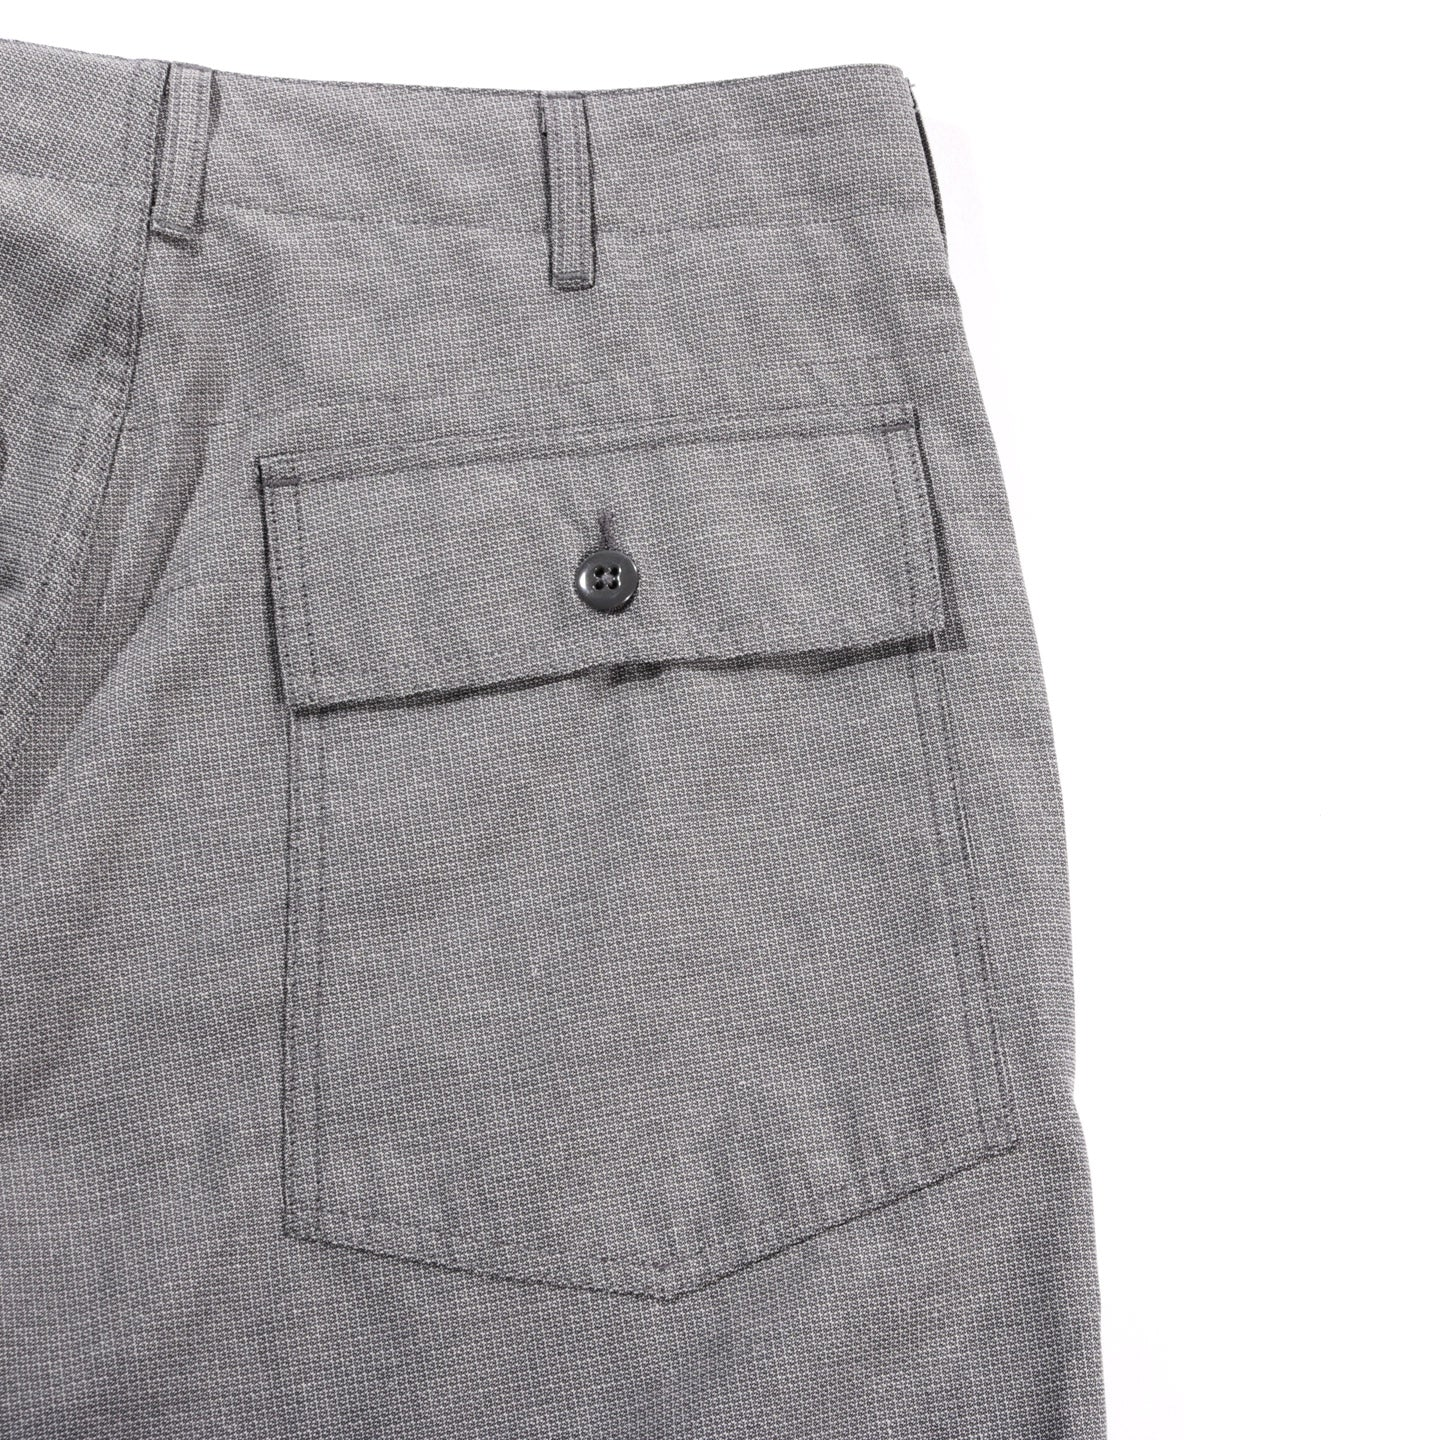 ENGINEERED GARMENTS ATLANTIC PARKA BLACKWATCH NYCO CLOTH